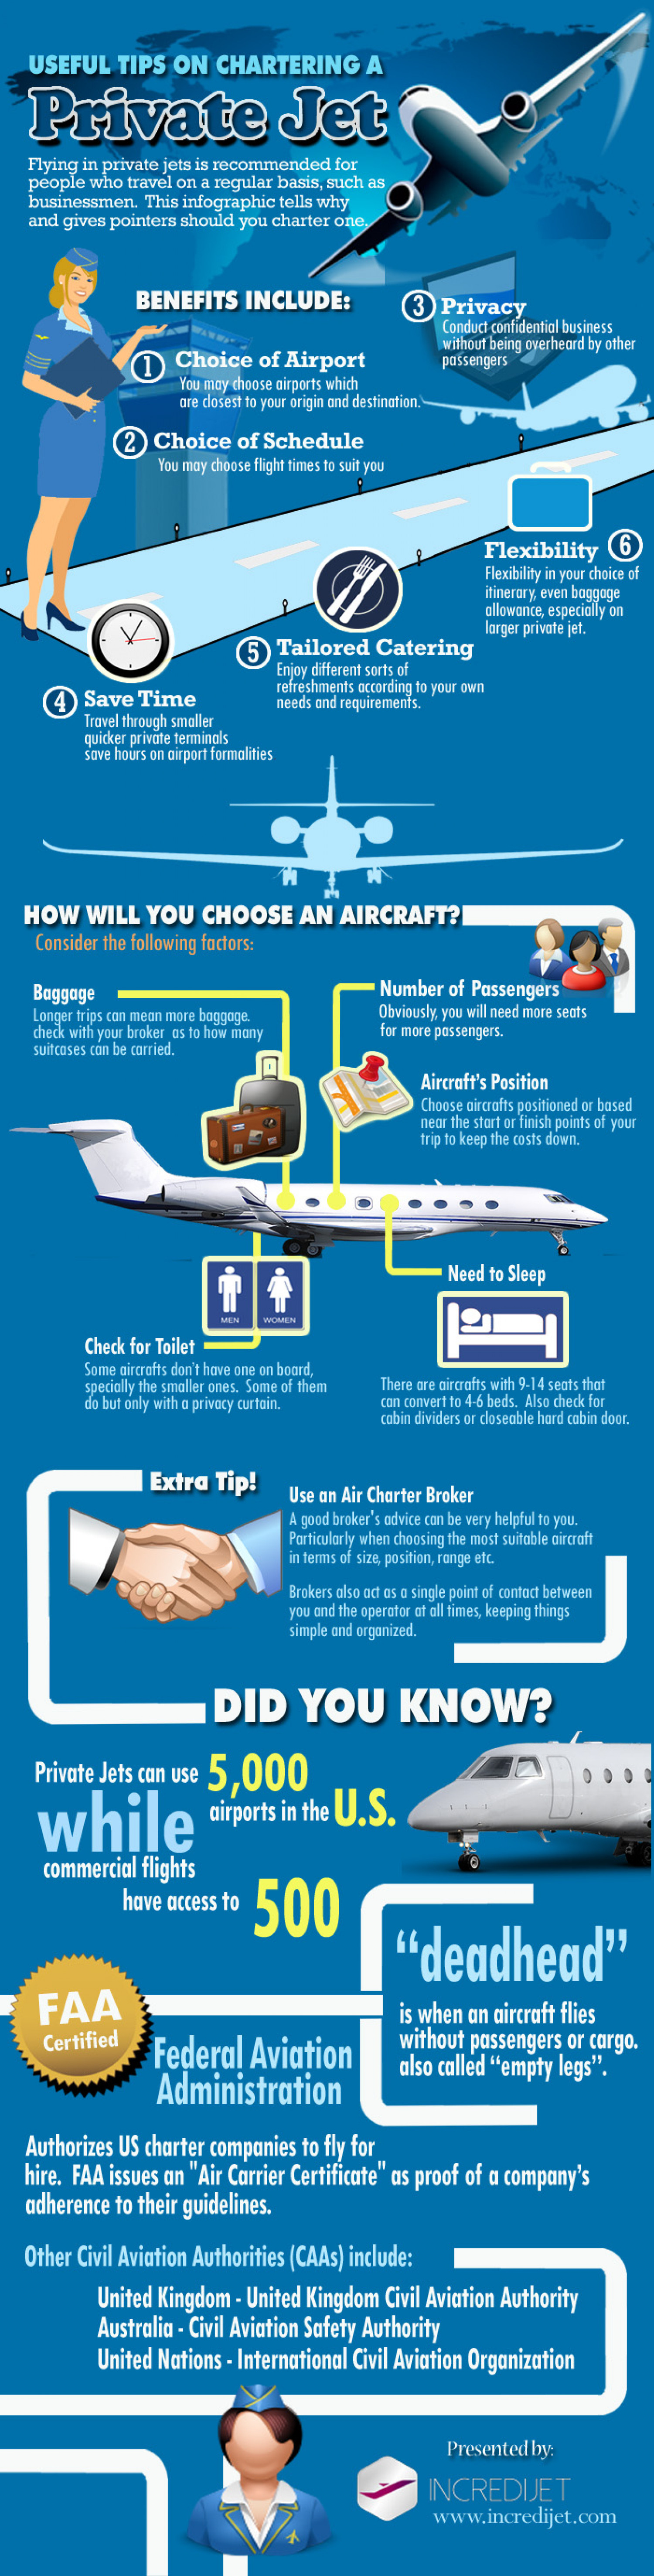 Useful Tips on Chartering a Private Jet Infographic